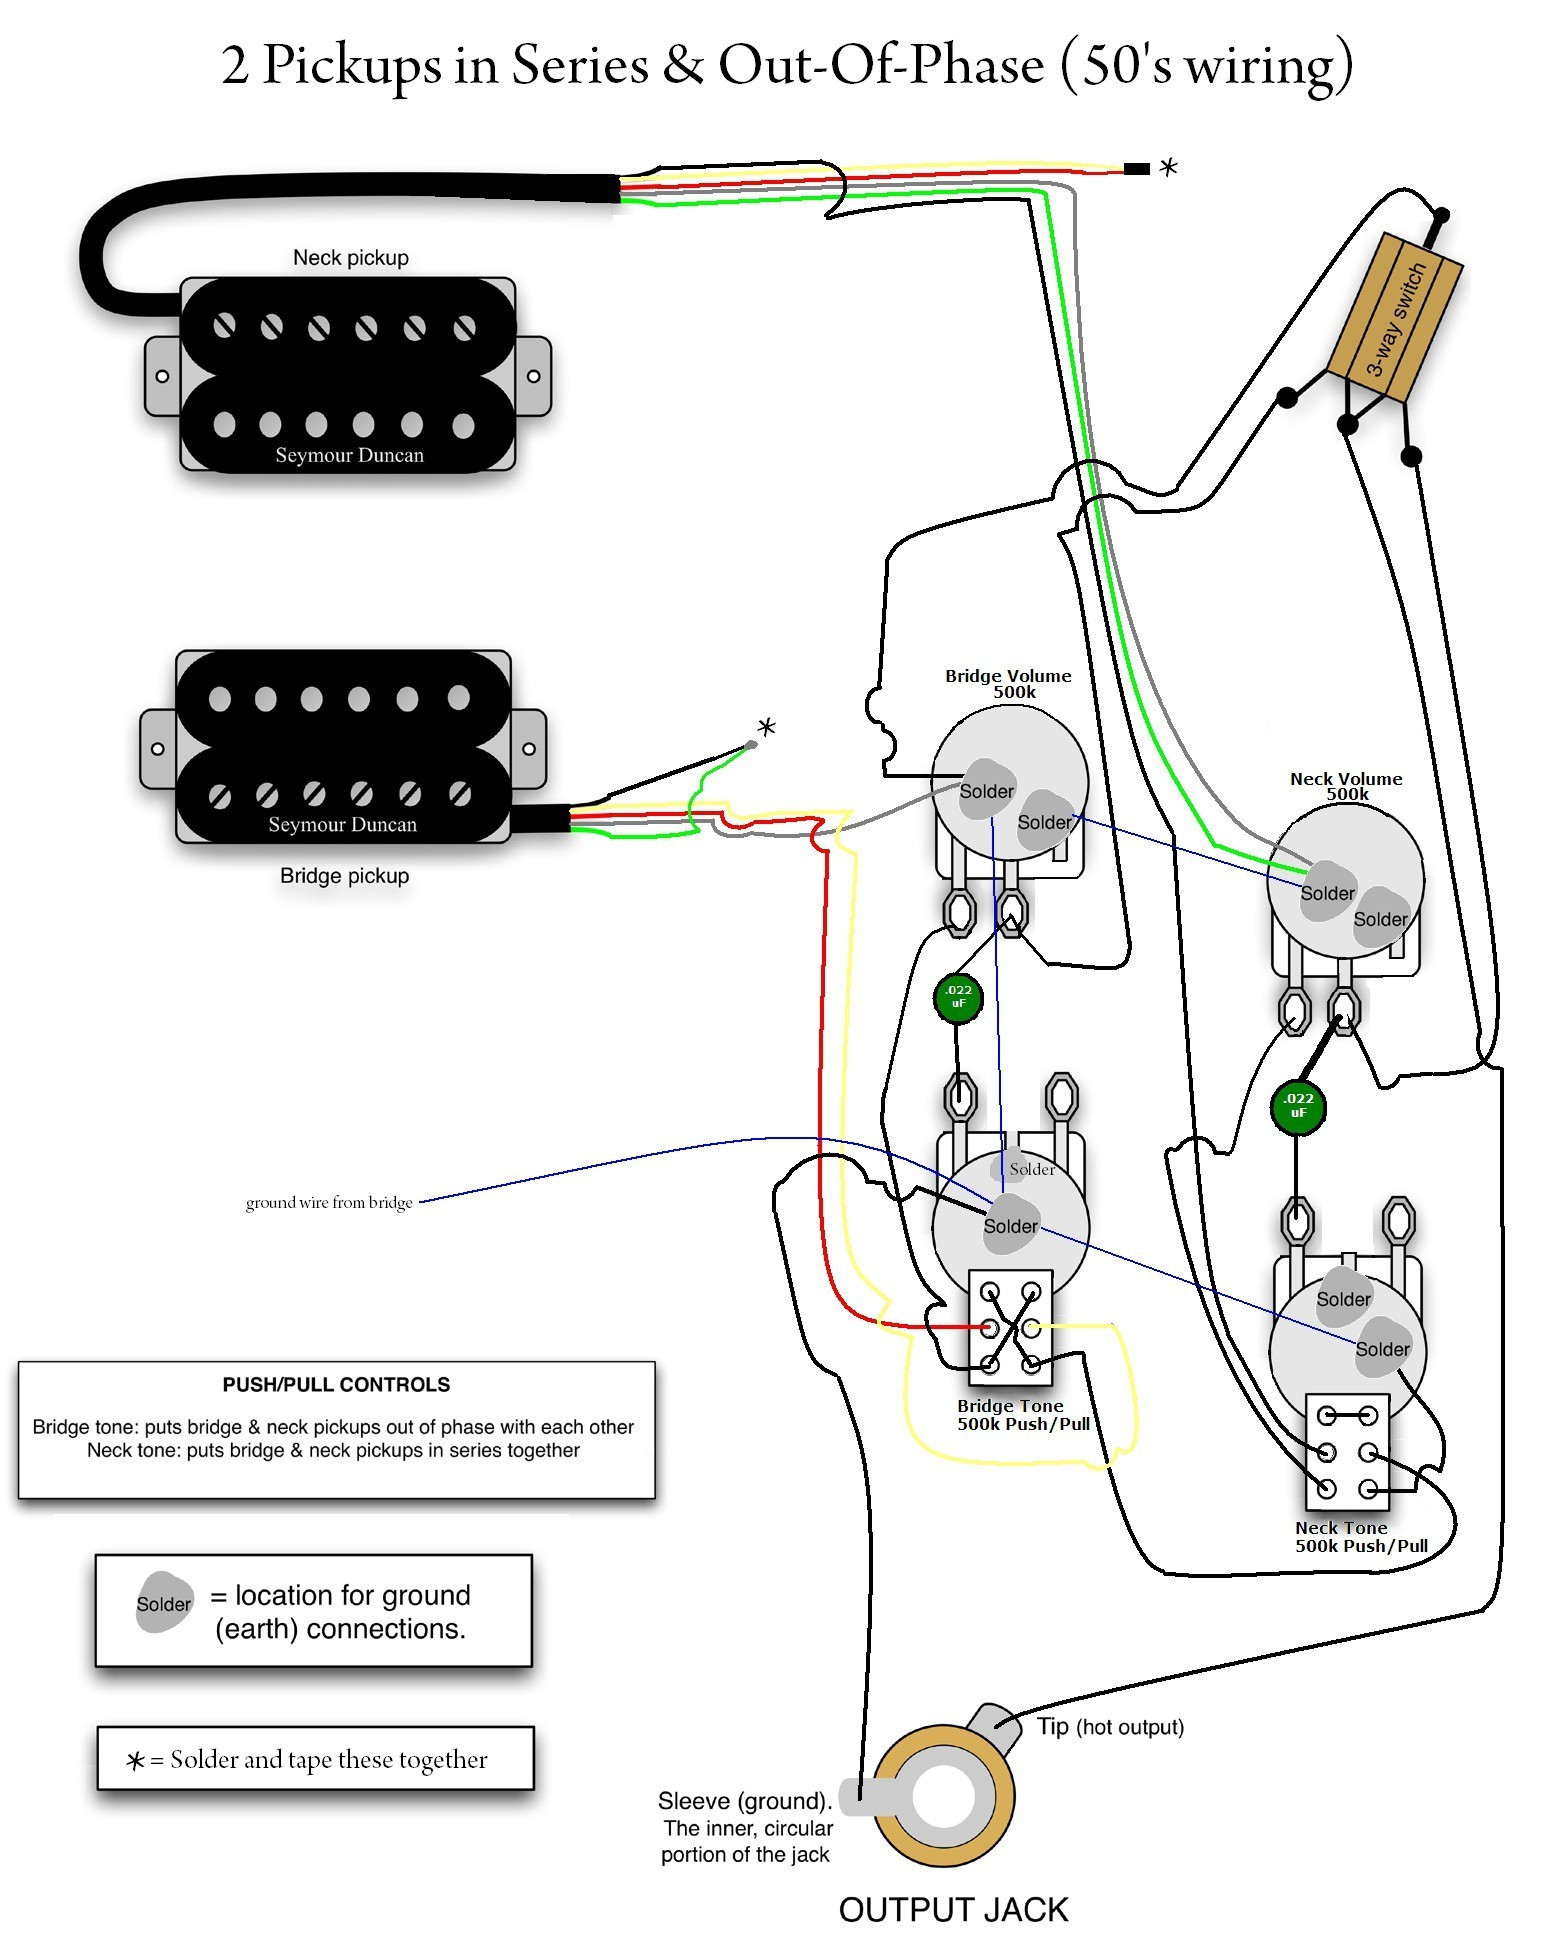 hight resolution of gibson 57 classic 4 conductor wiring diagram wiring diagrams for gibson guitars refrence wiring schematic